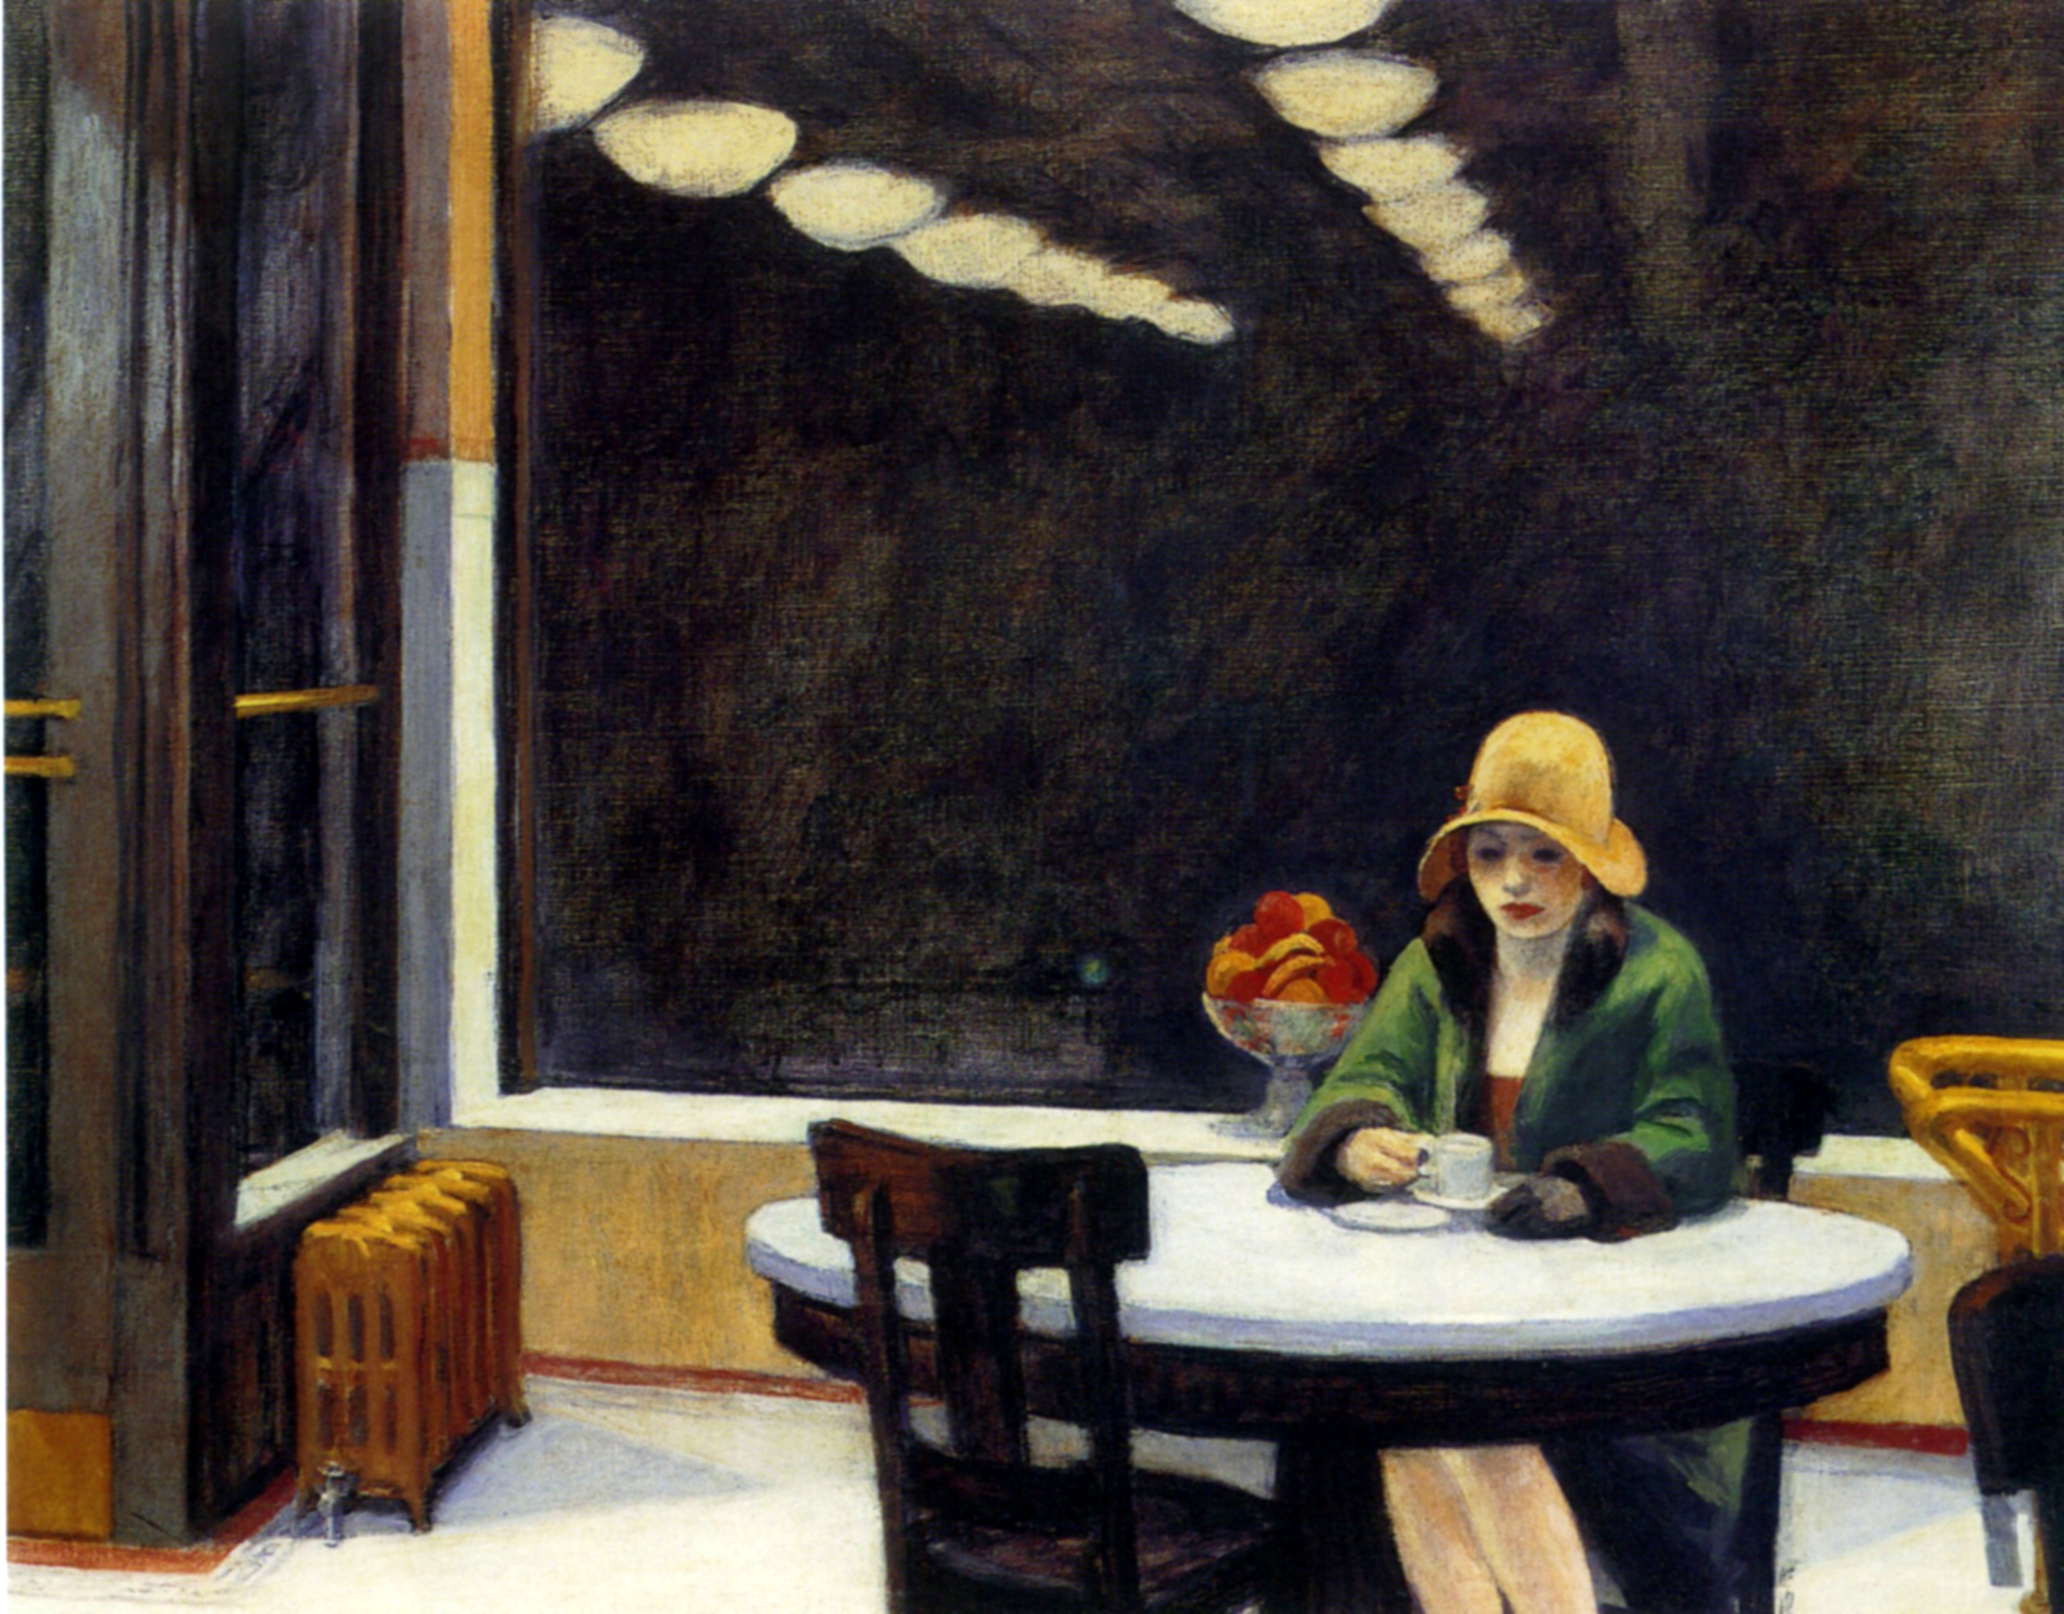 Edward Hopper, Automat (1927). Collectie Des Moines Art Center